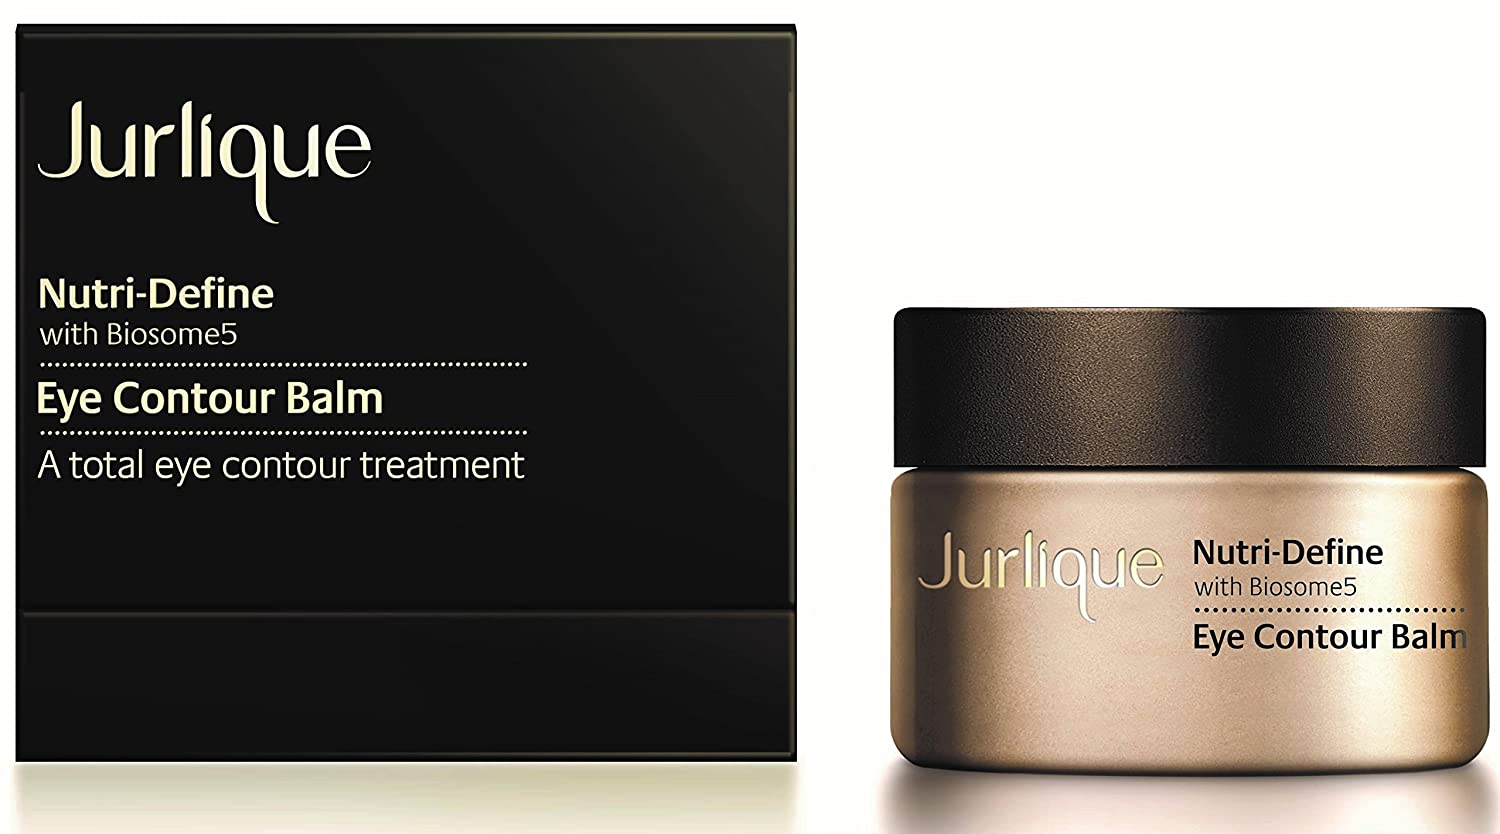 Jurlique nutri define eye contour balm new 0.5oz 111500